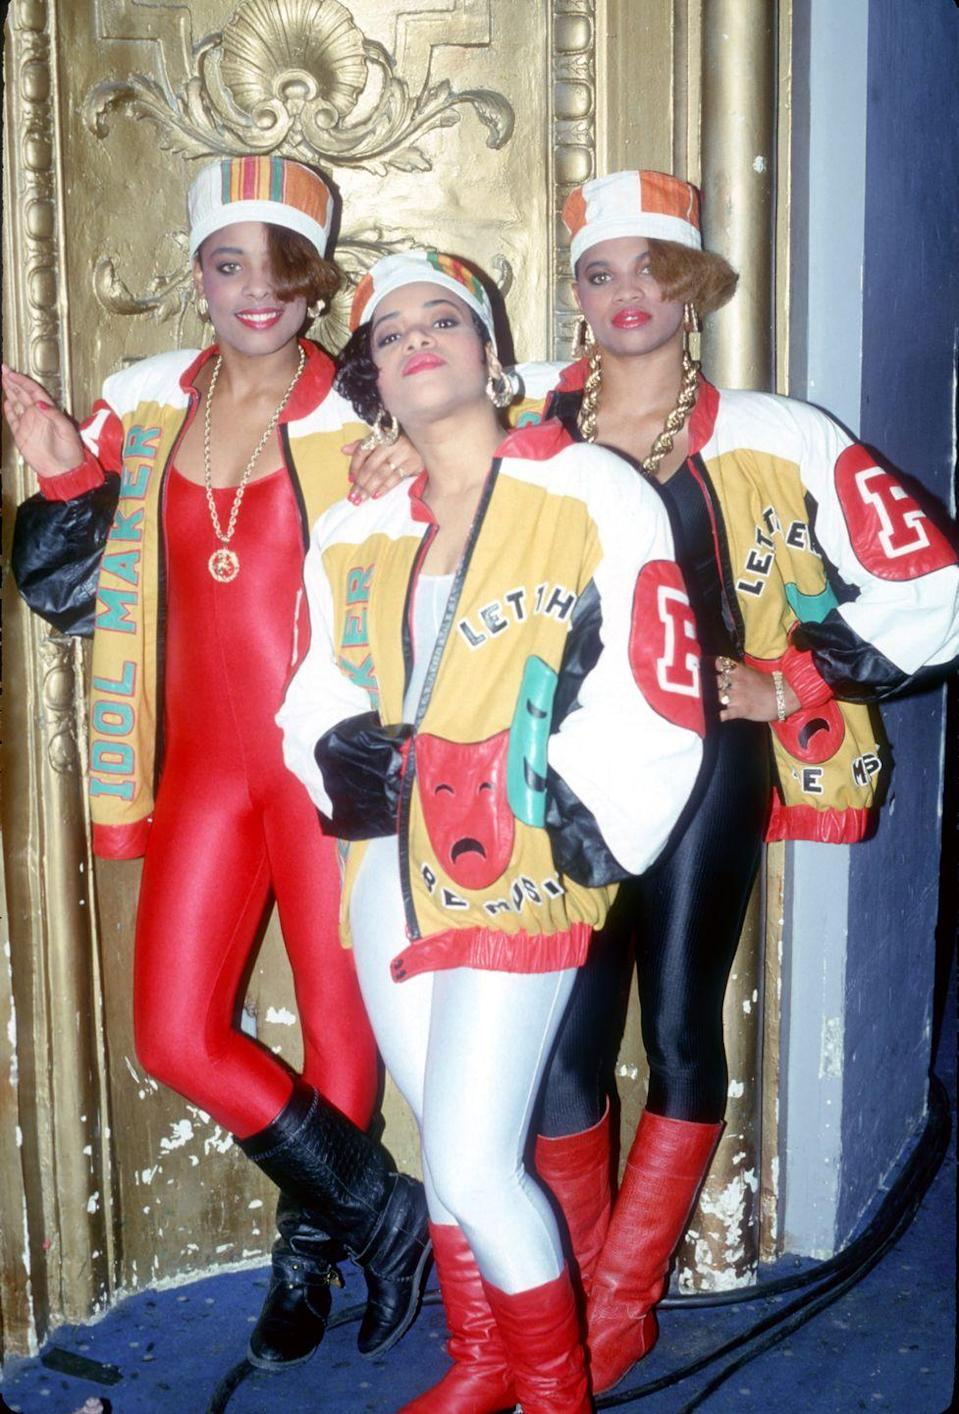 <p>Salt-N-Pepa in matching looks and accessories for an official portrait session. </p>